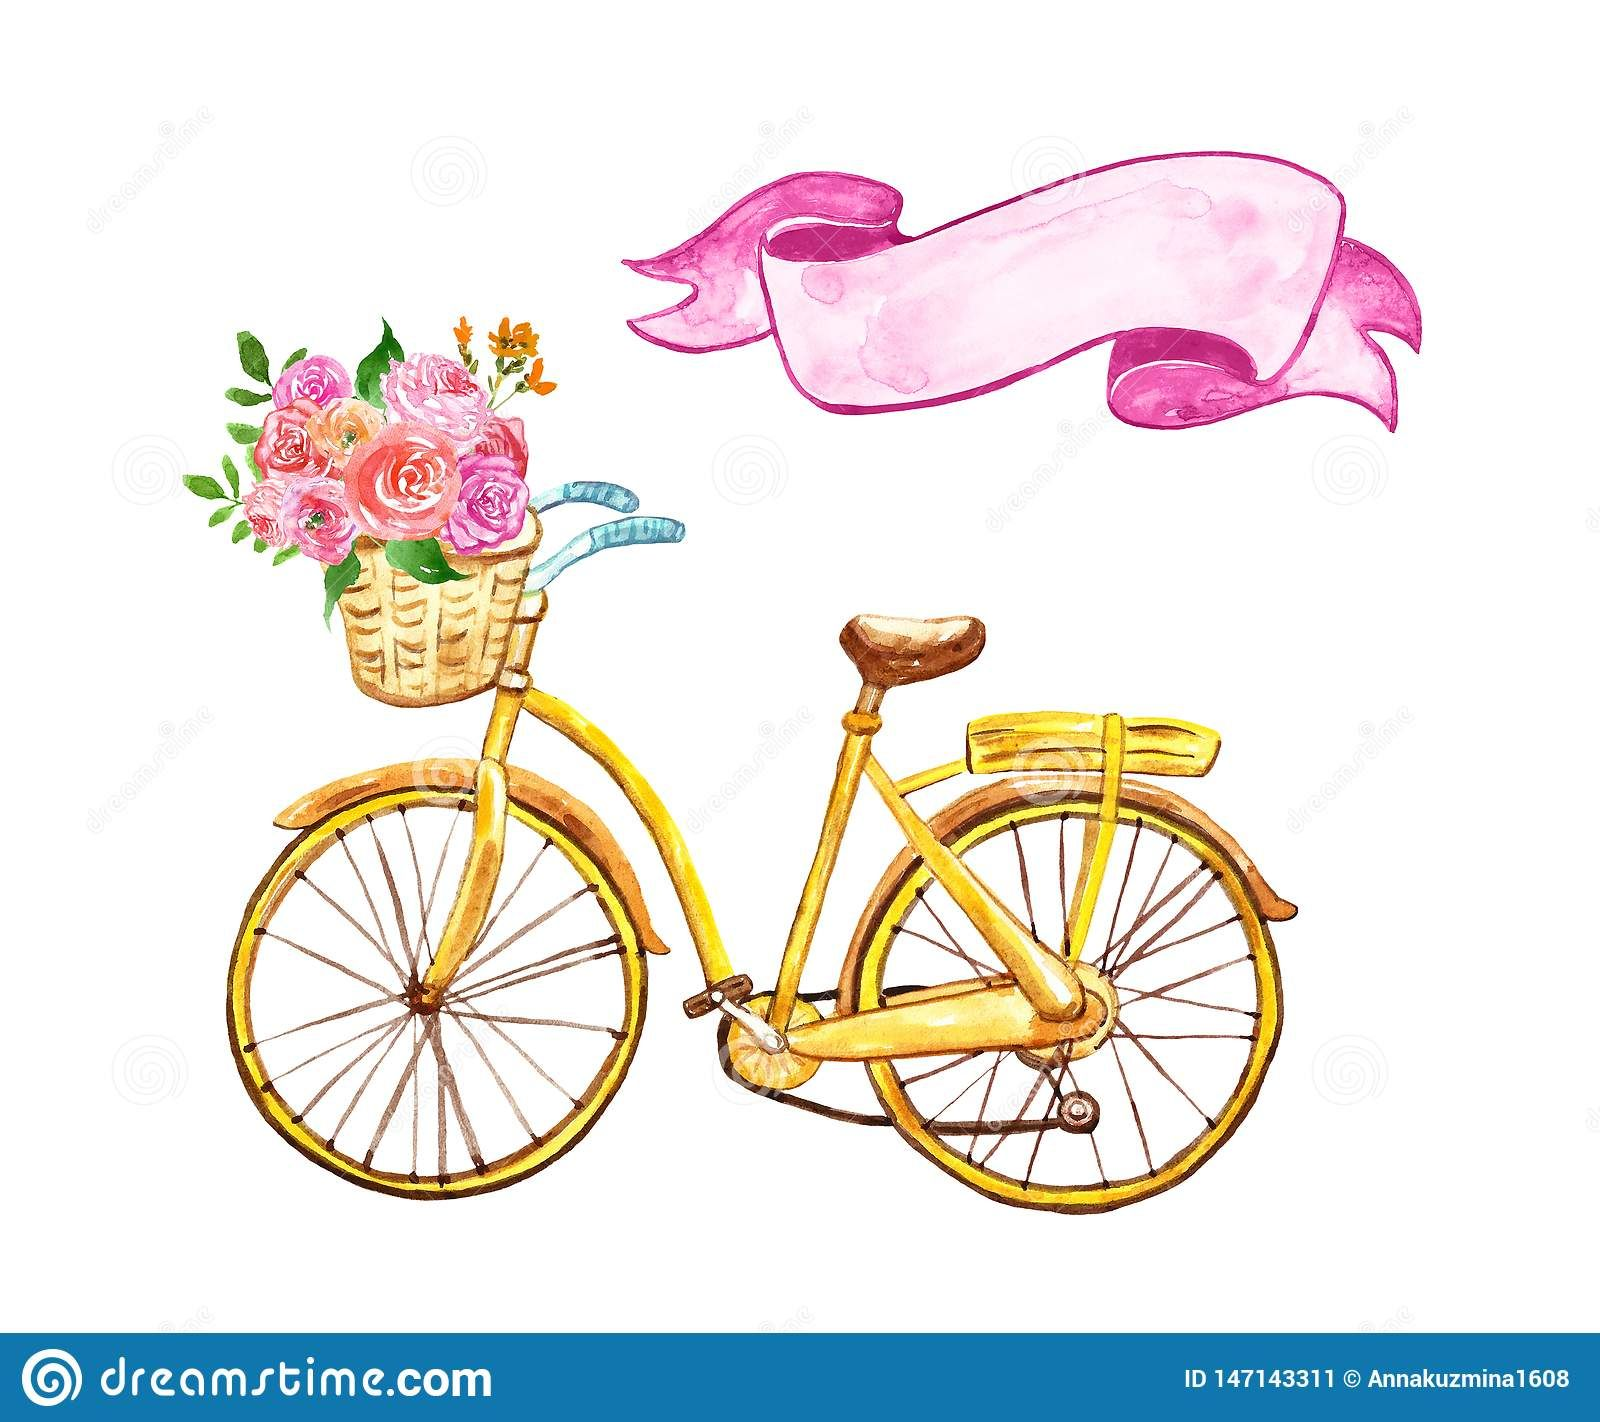 Yellow hand painted bicycle with basket and pink flowers.